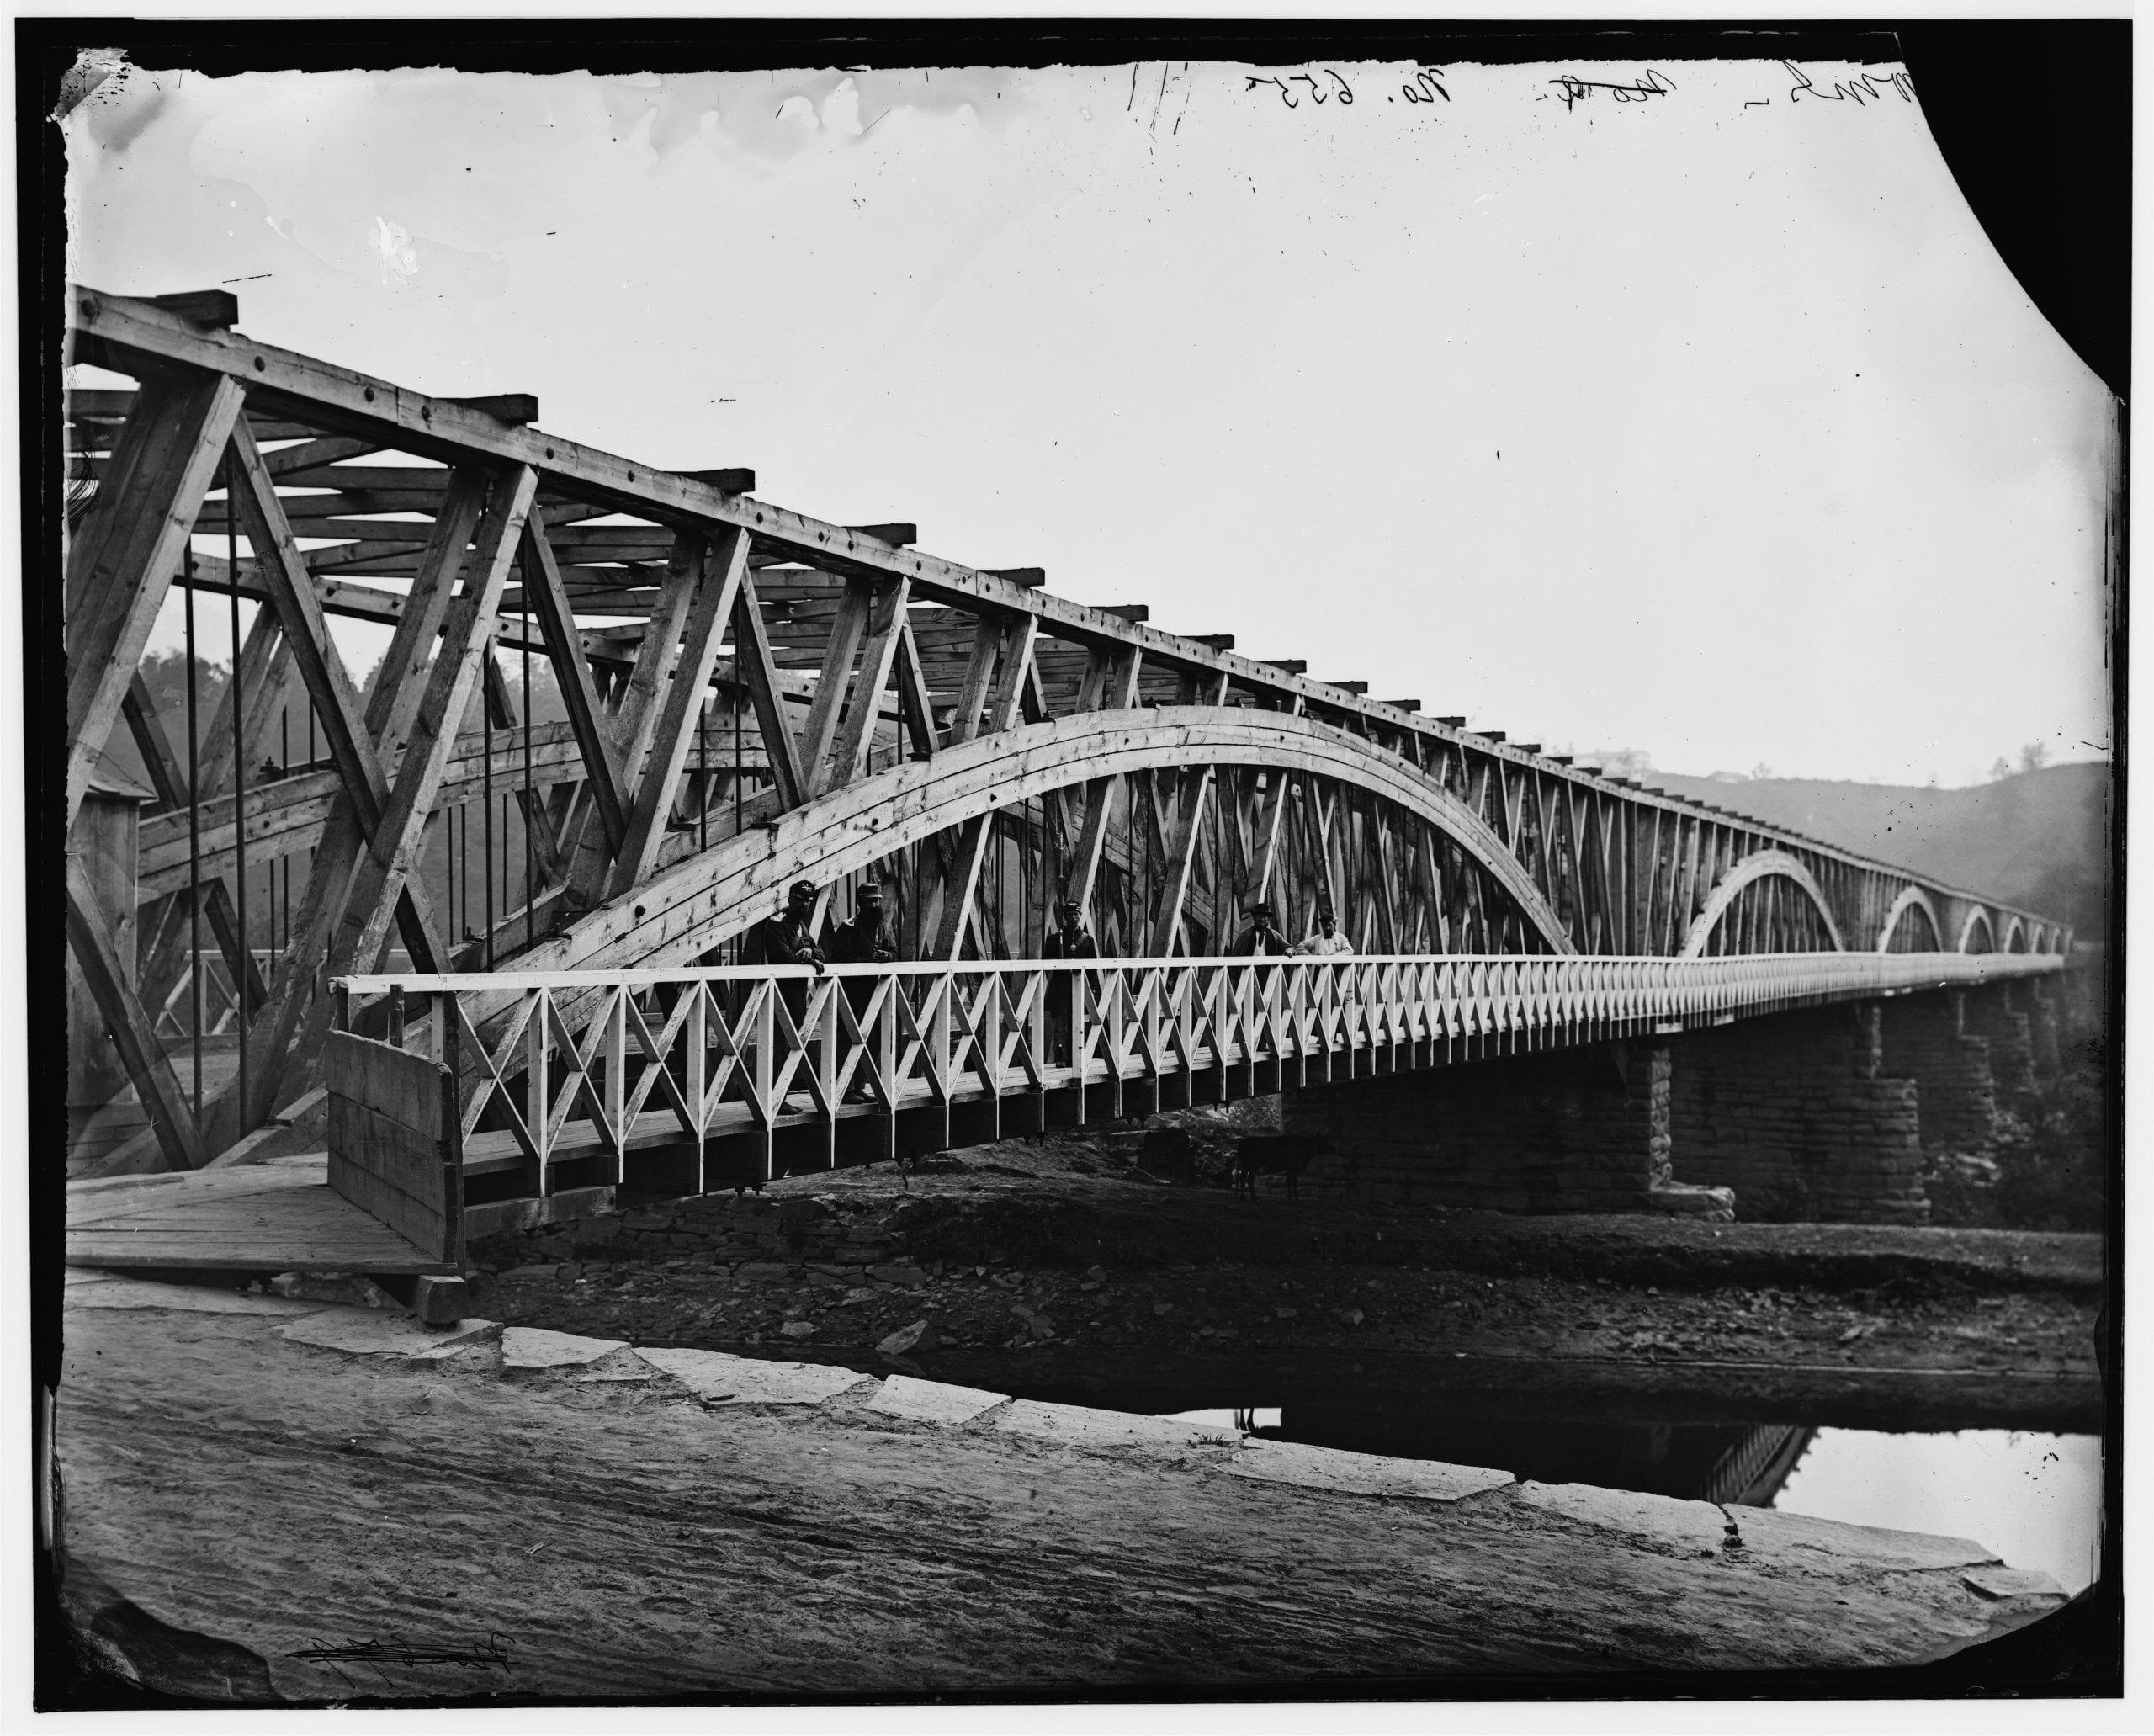 Chain Bridge at the end of the Civil War (Library of Congress)